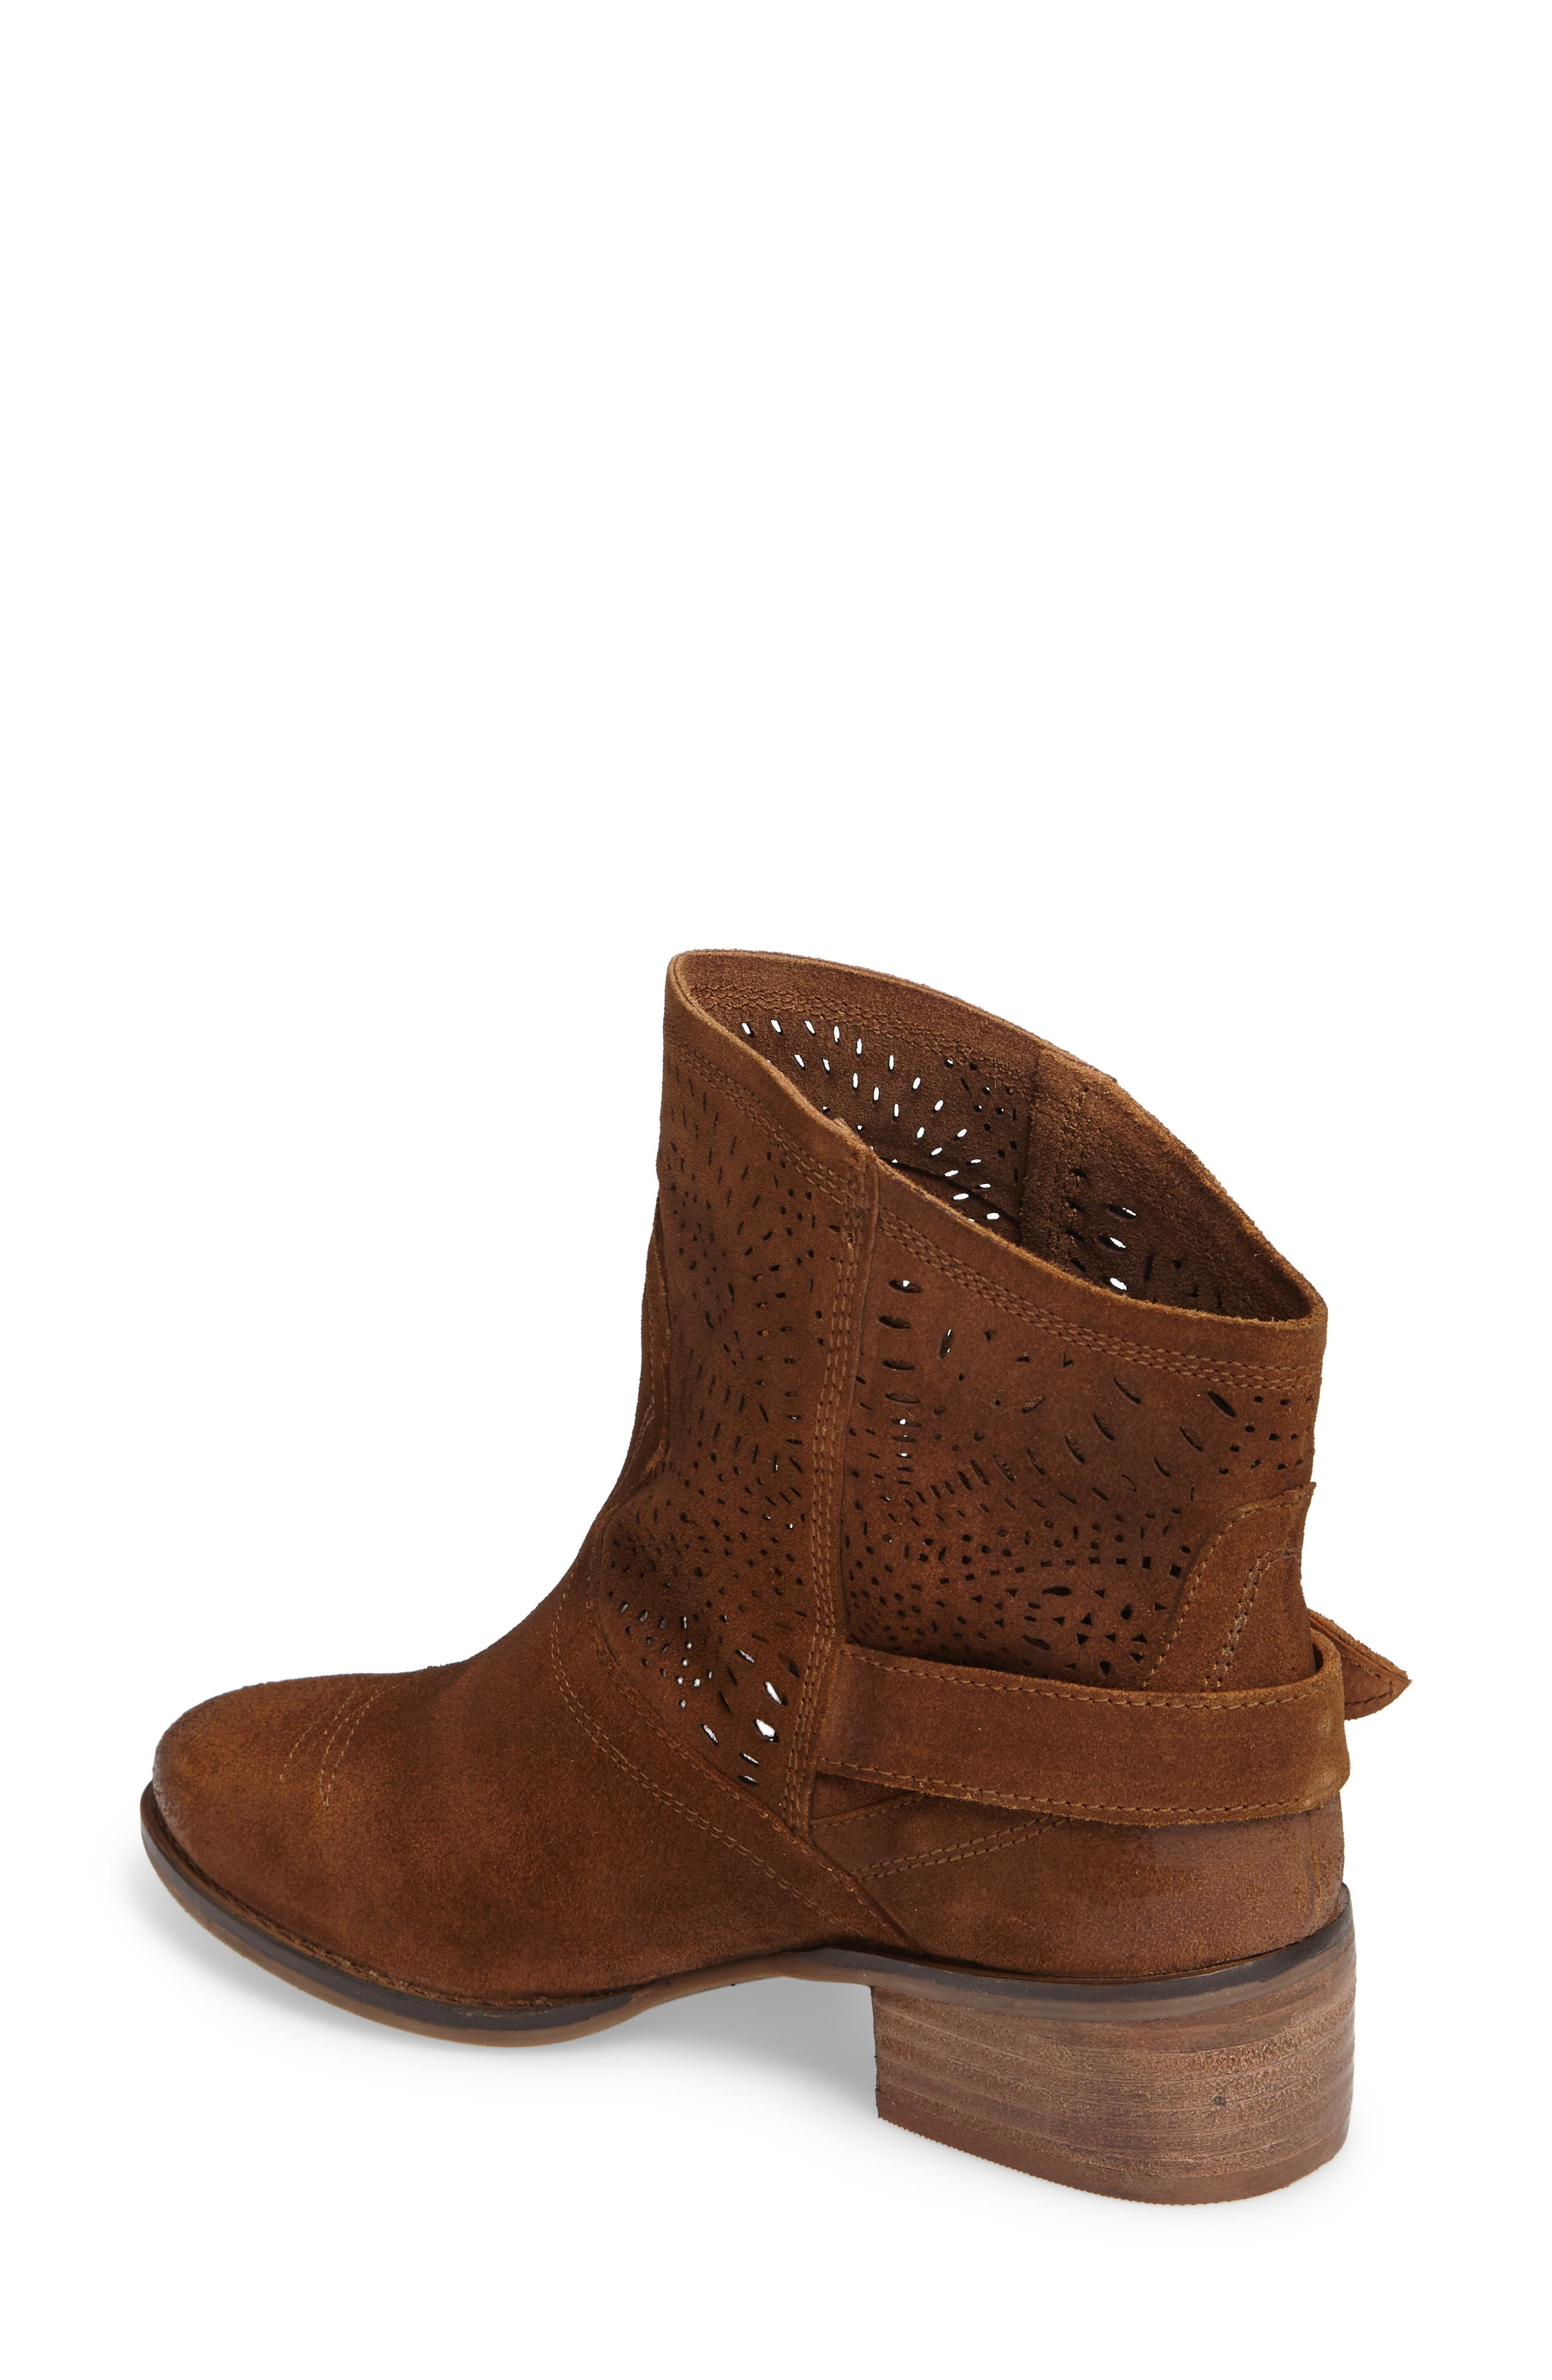 Zoey Perforated Bootie,                             Alternate thumbnail 6, color,